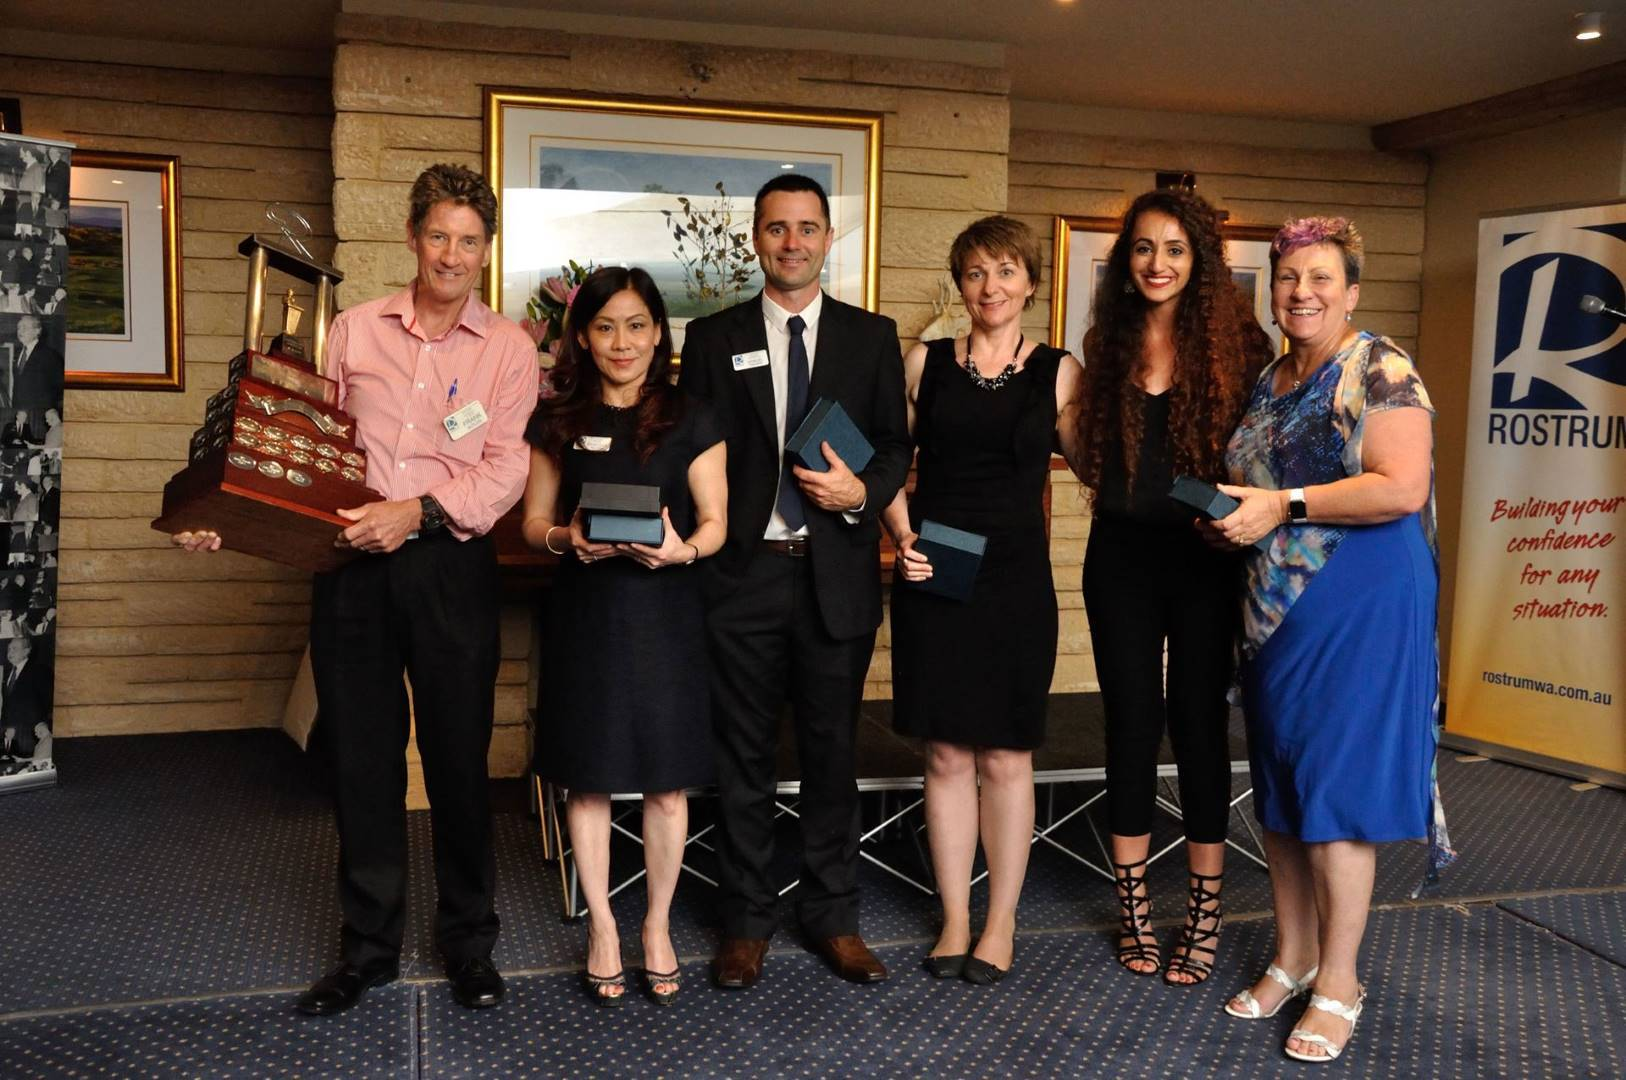 Arthur Garvey Speaker Of The Year 2015 – APPEALING TO THE EMOTIONS